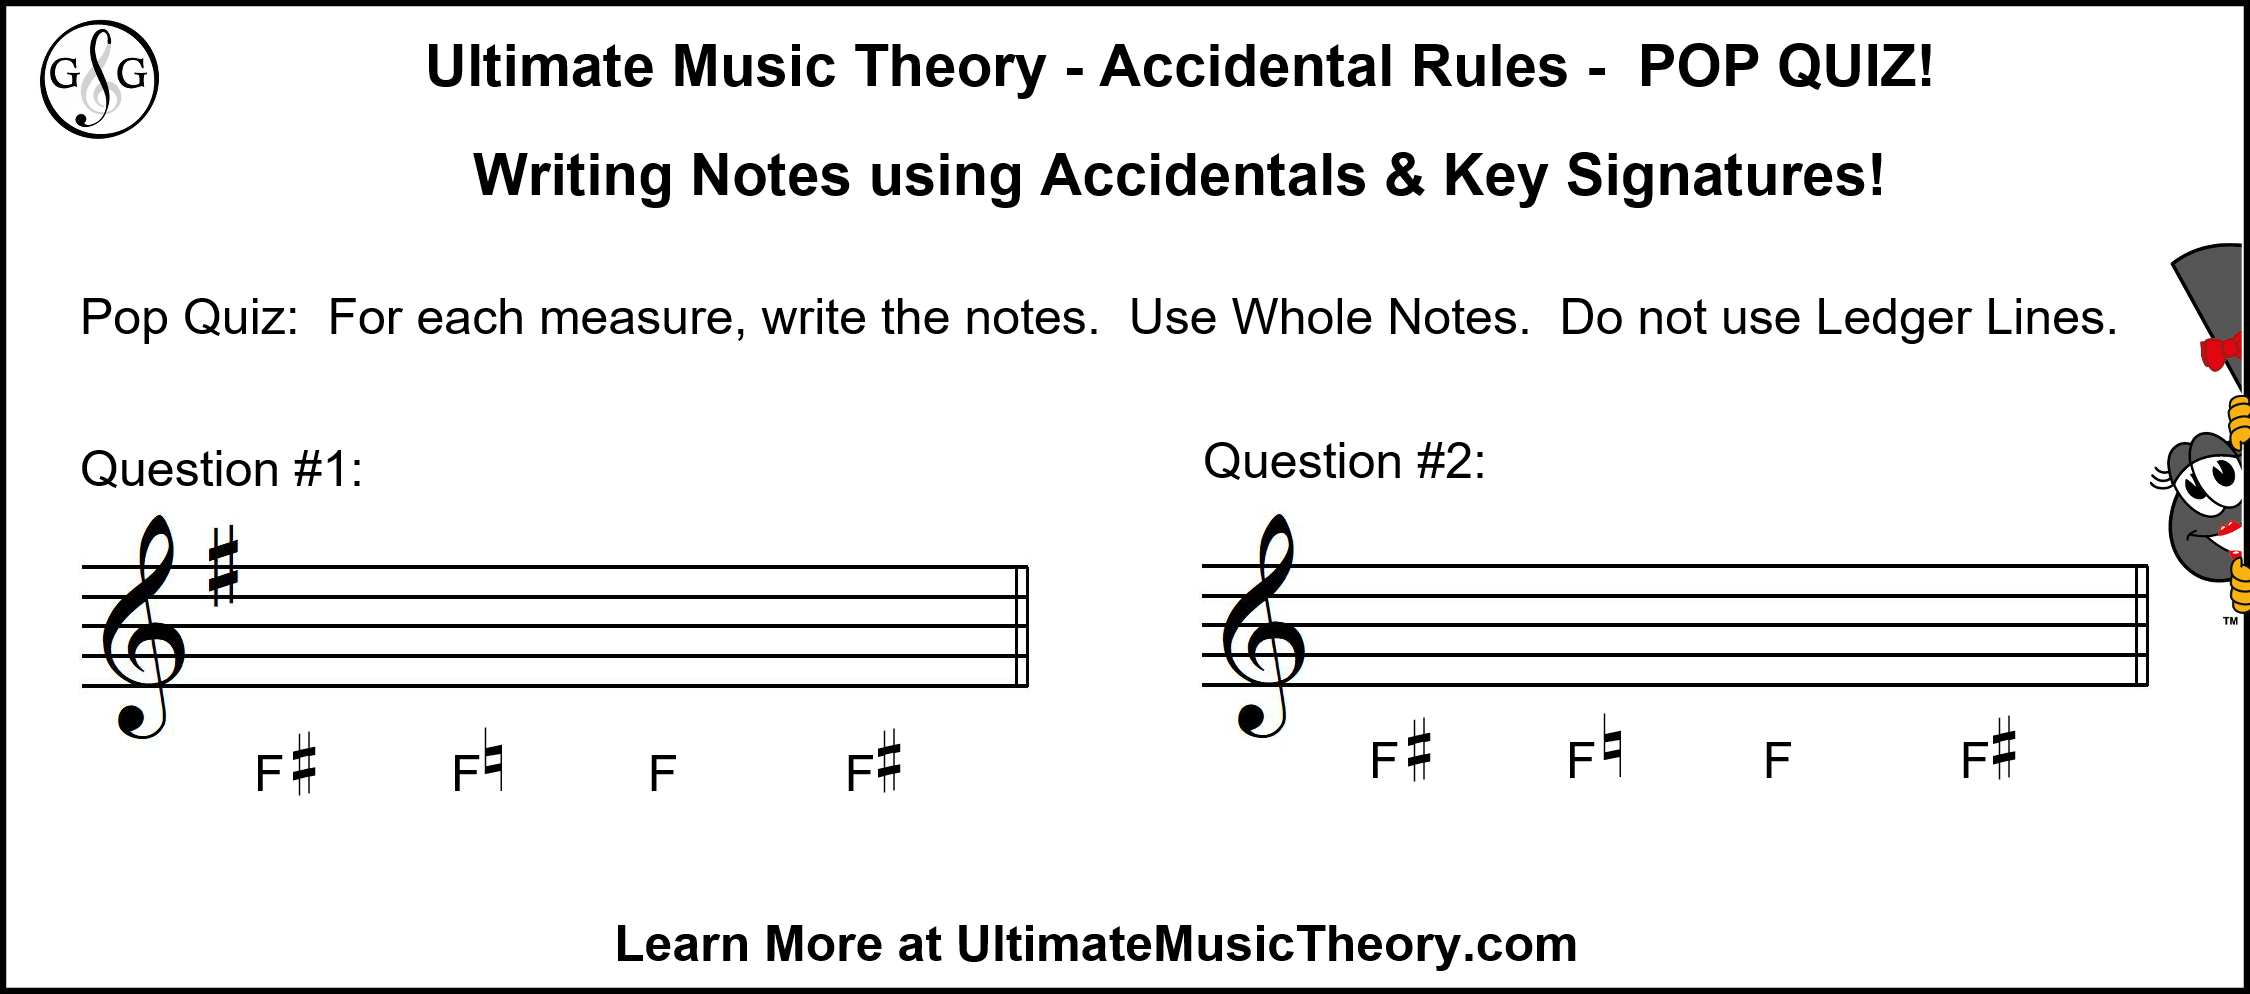 UMT Pop Quiz - Writing Notes using Accidentals and Key Signatures